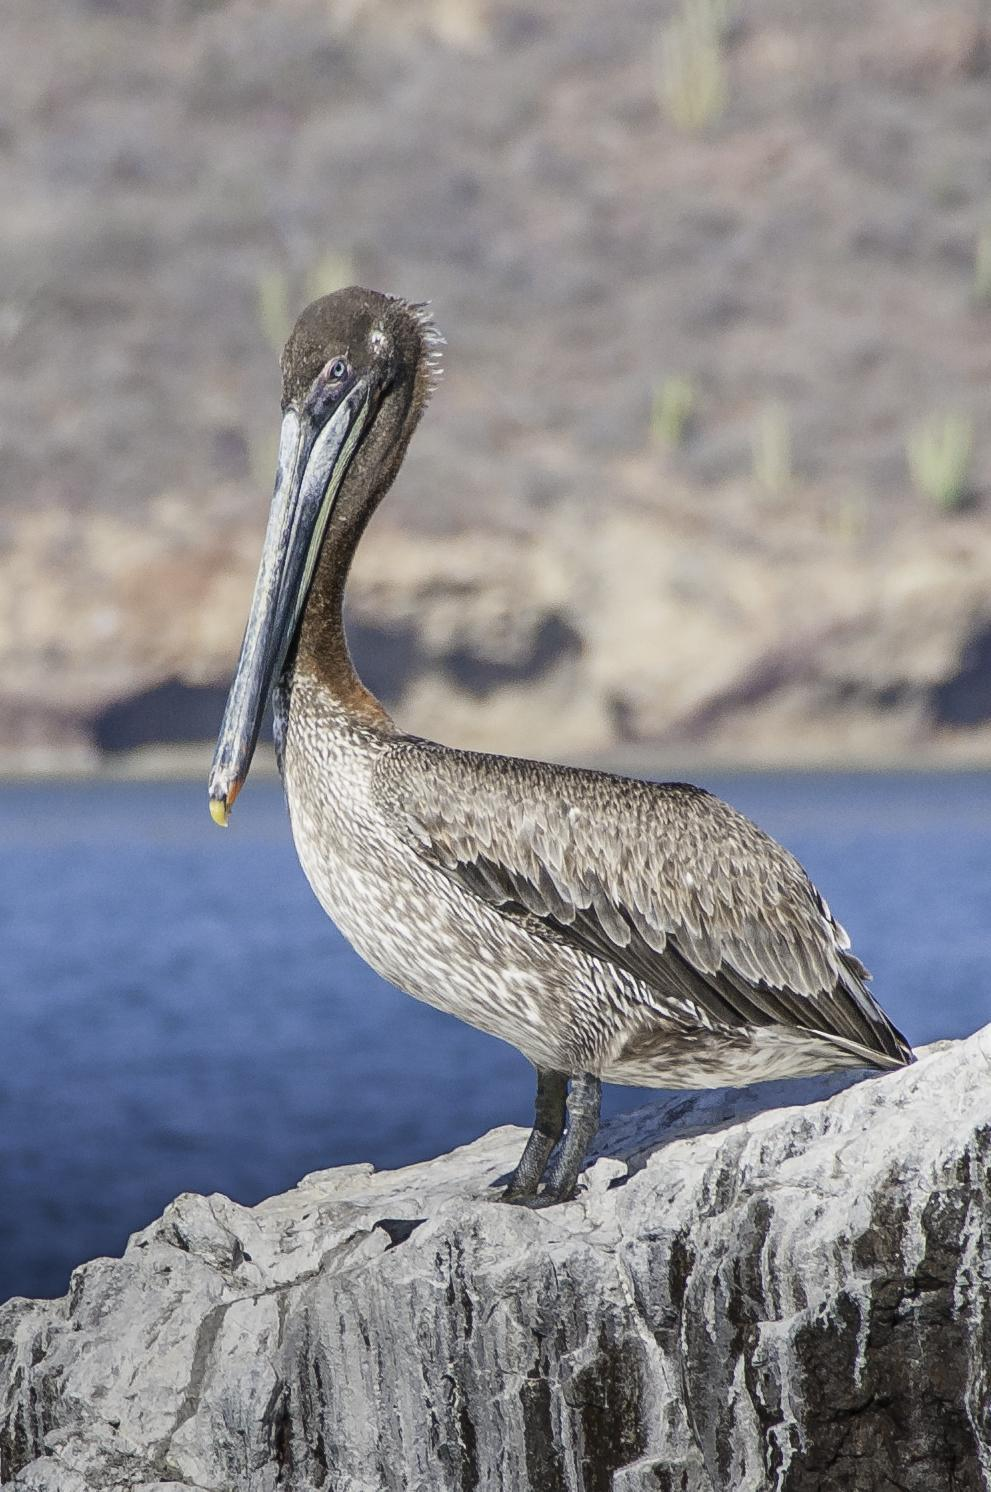 Brown Pelican Photo by Mason Rose